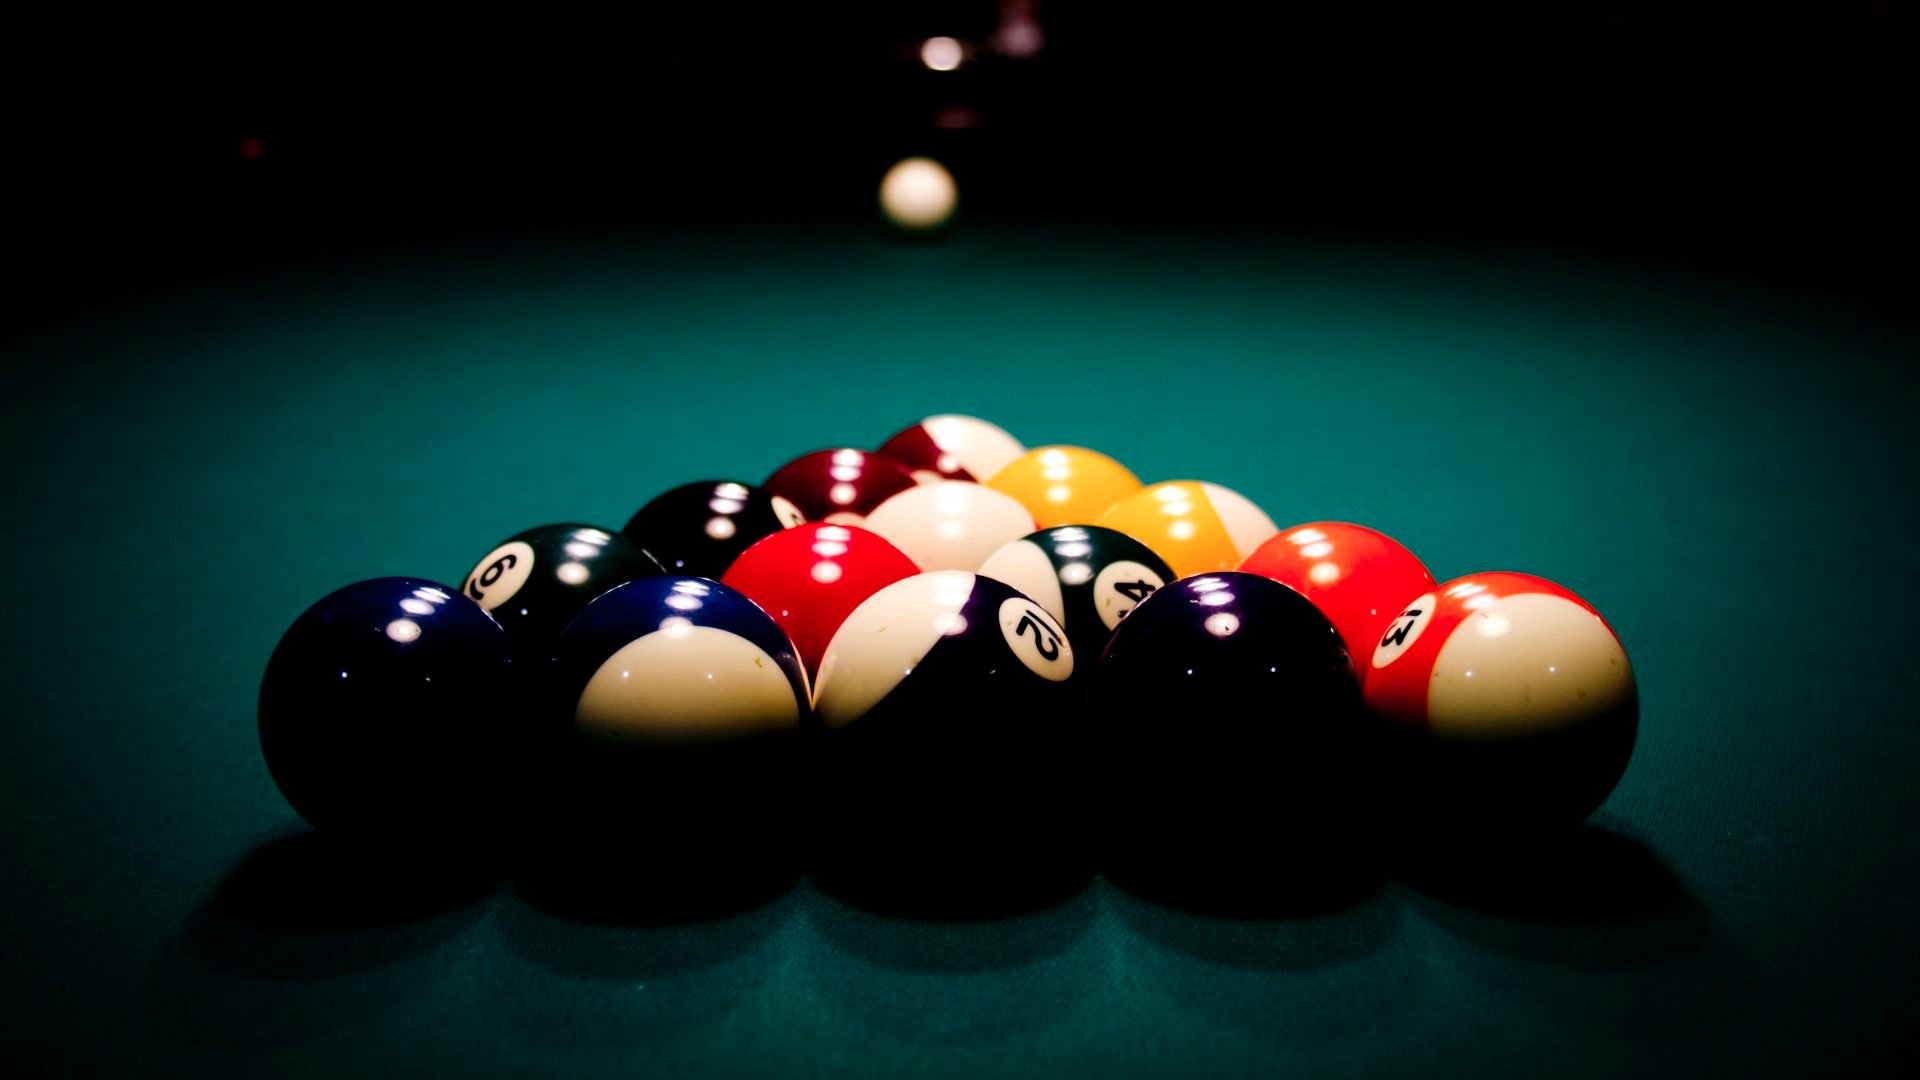 a description of billiards a game played on a rectangular table half as wide as it is long